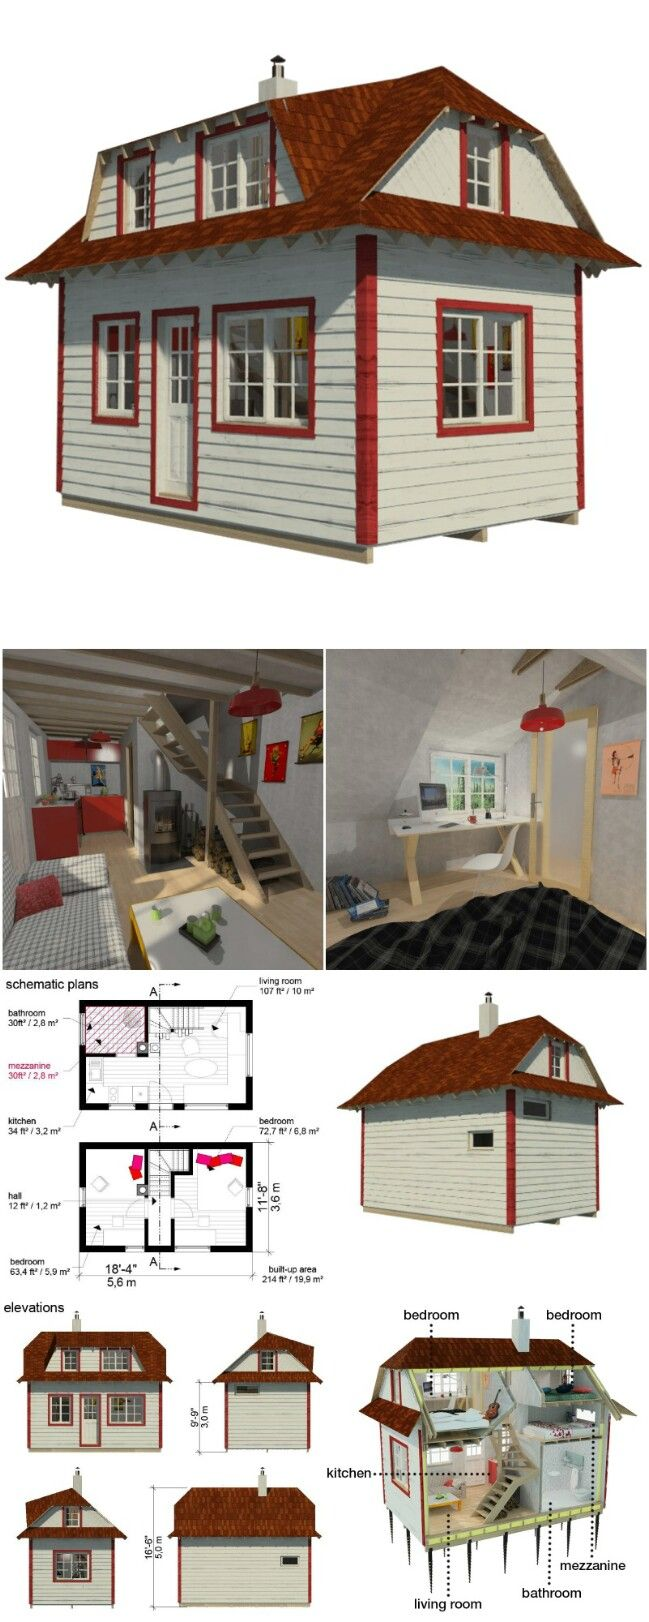 Tiny House Bauplan 25 Plans To Build Your Own Fully Customized Tiny House On A Budget